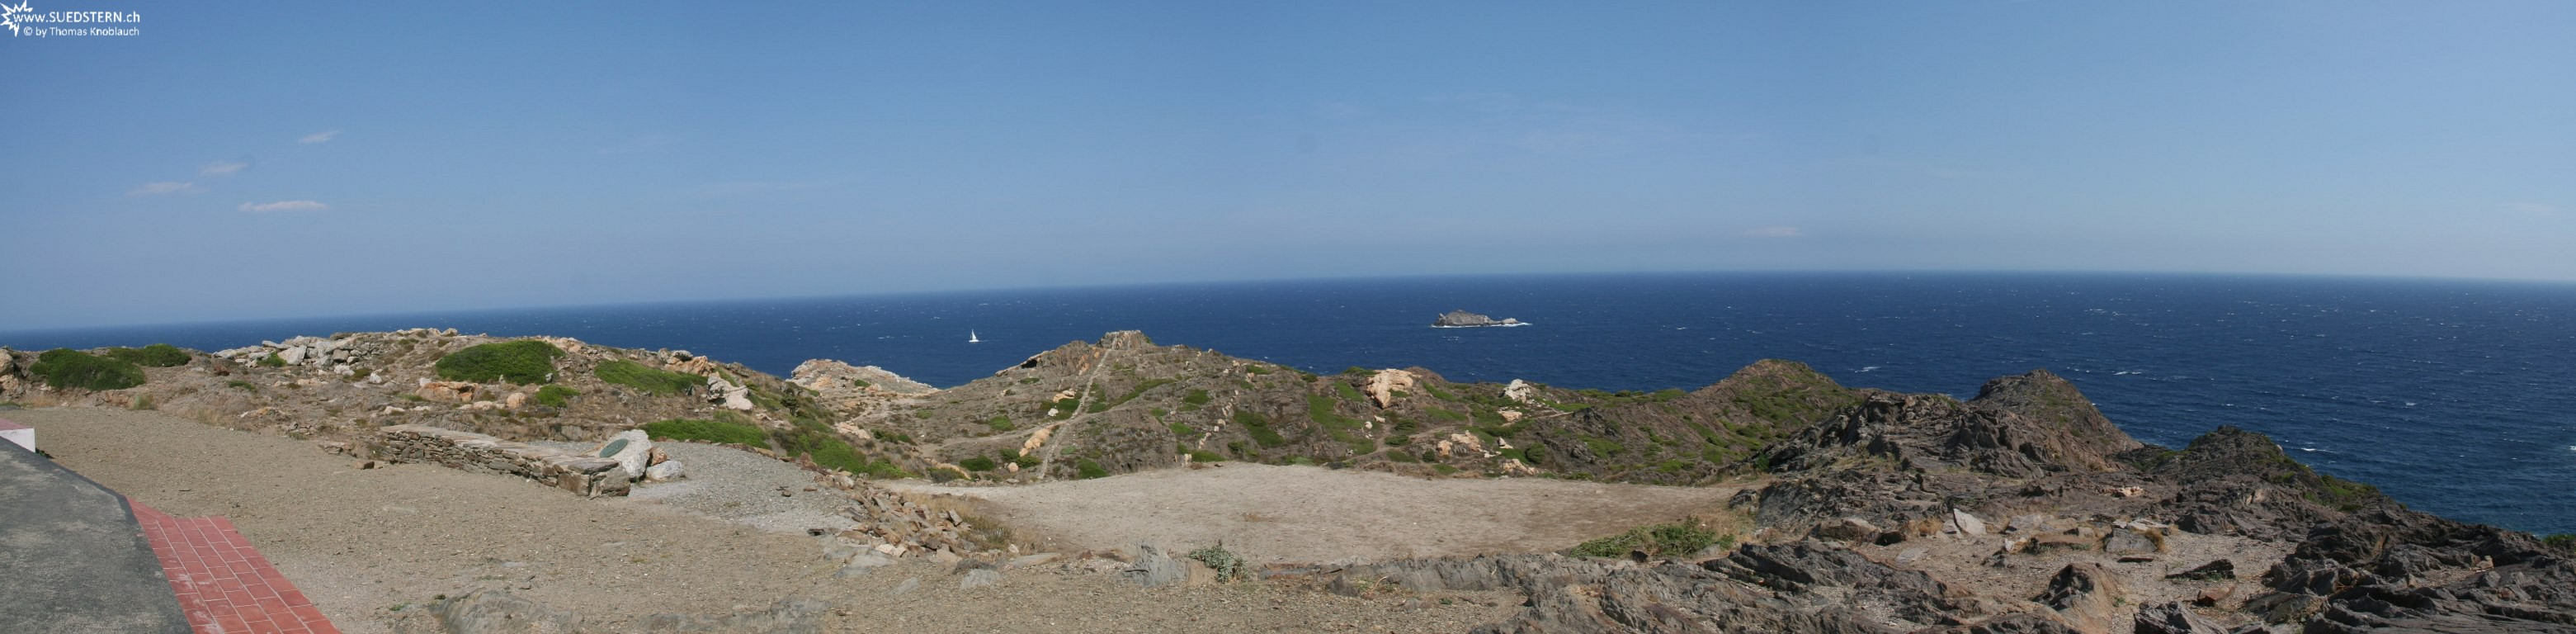 2008-09-03 - Panorama from Cap de Creus - Spain 1